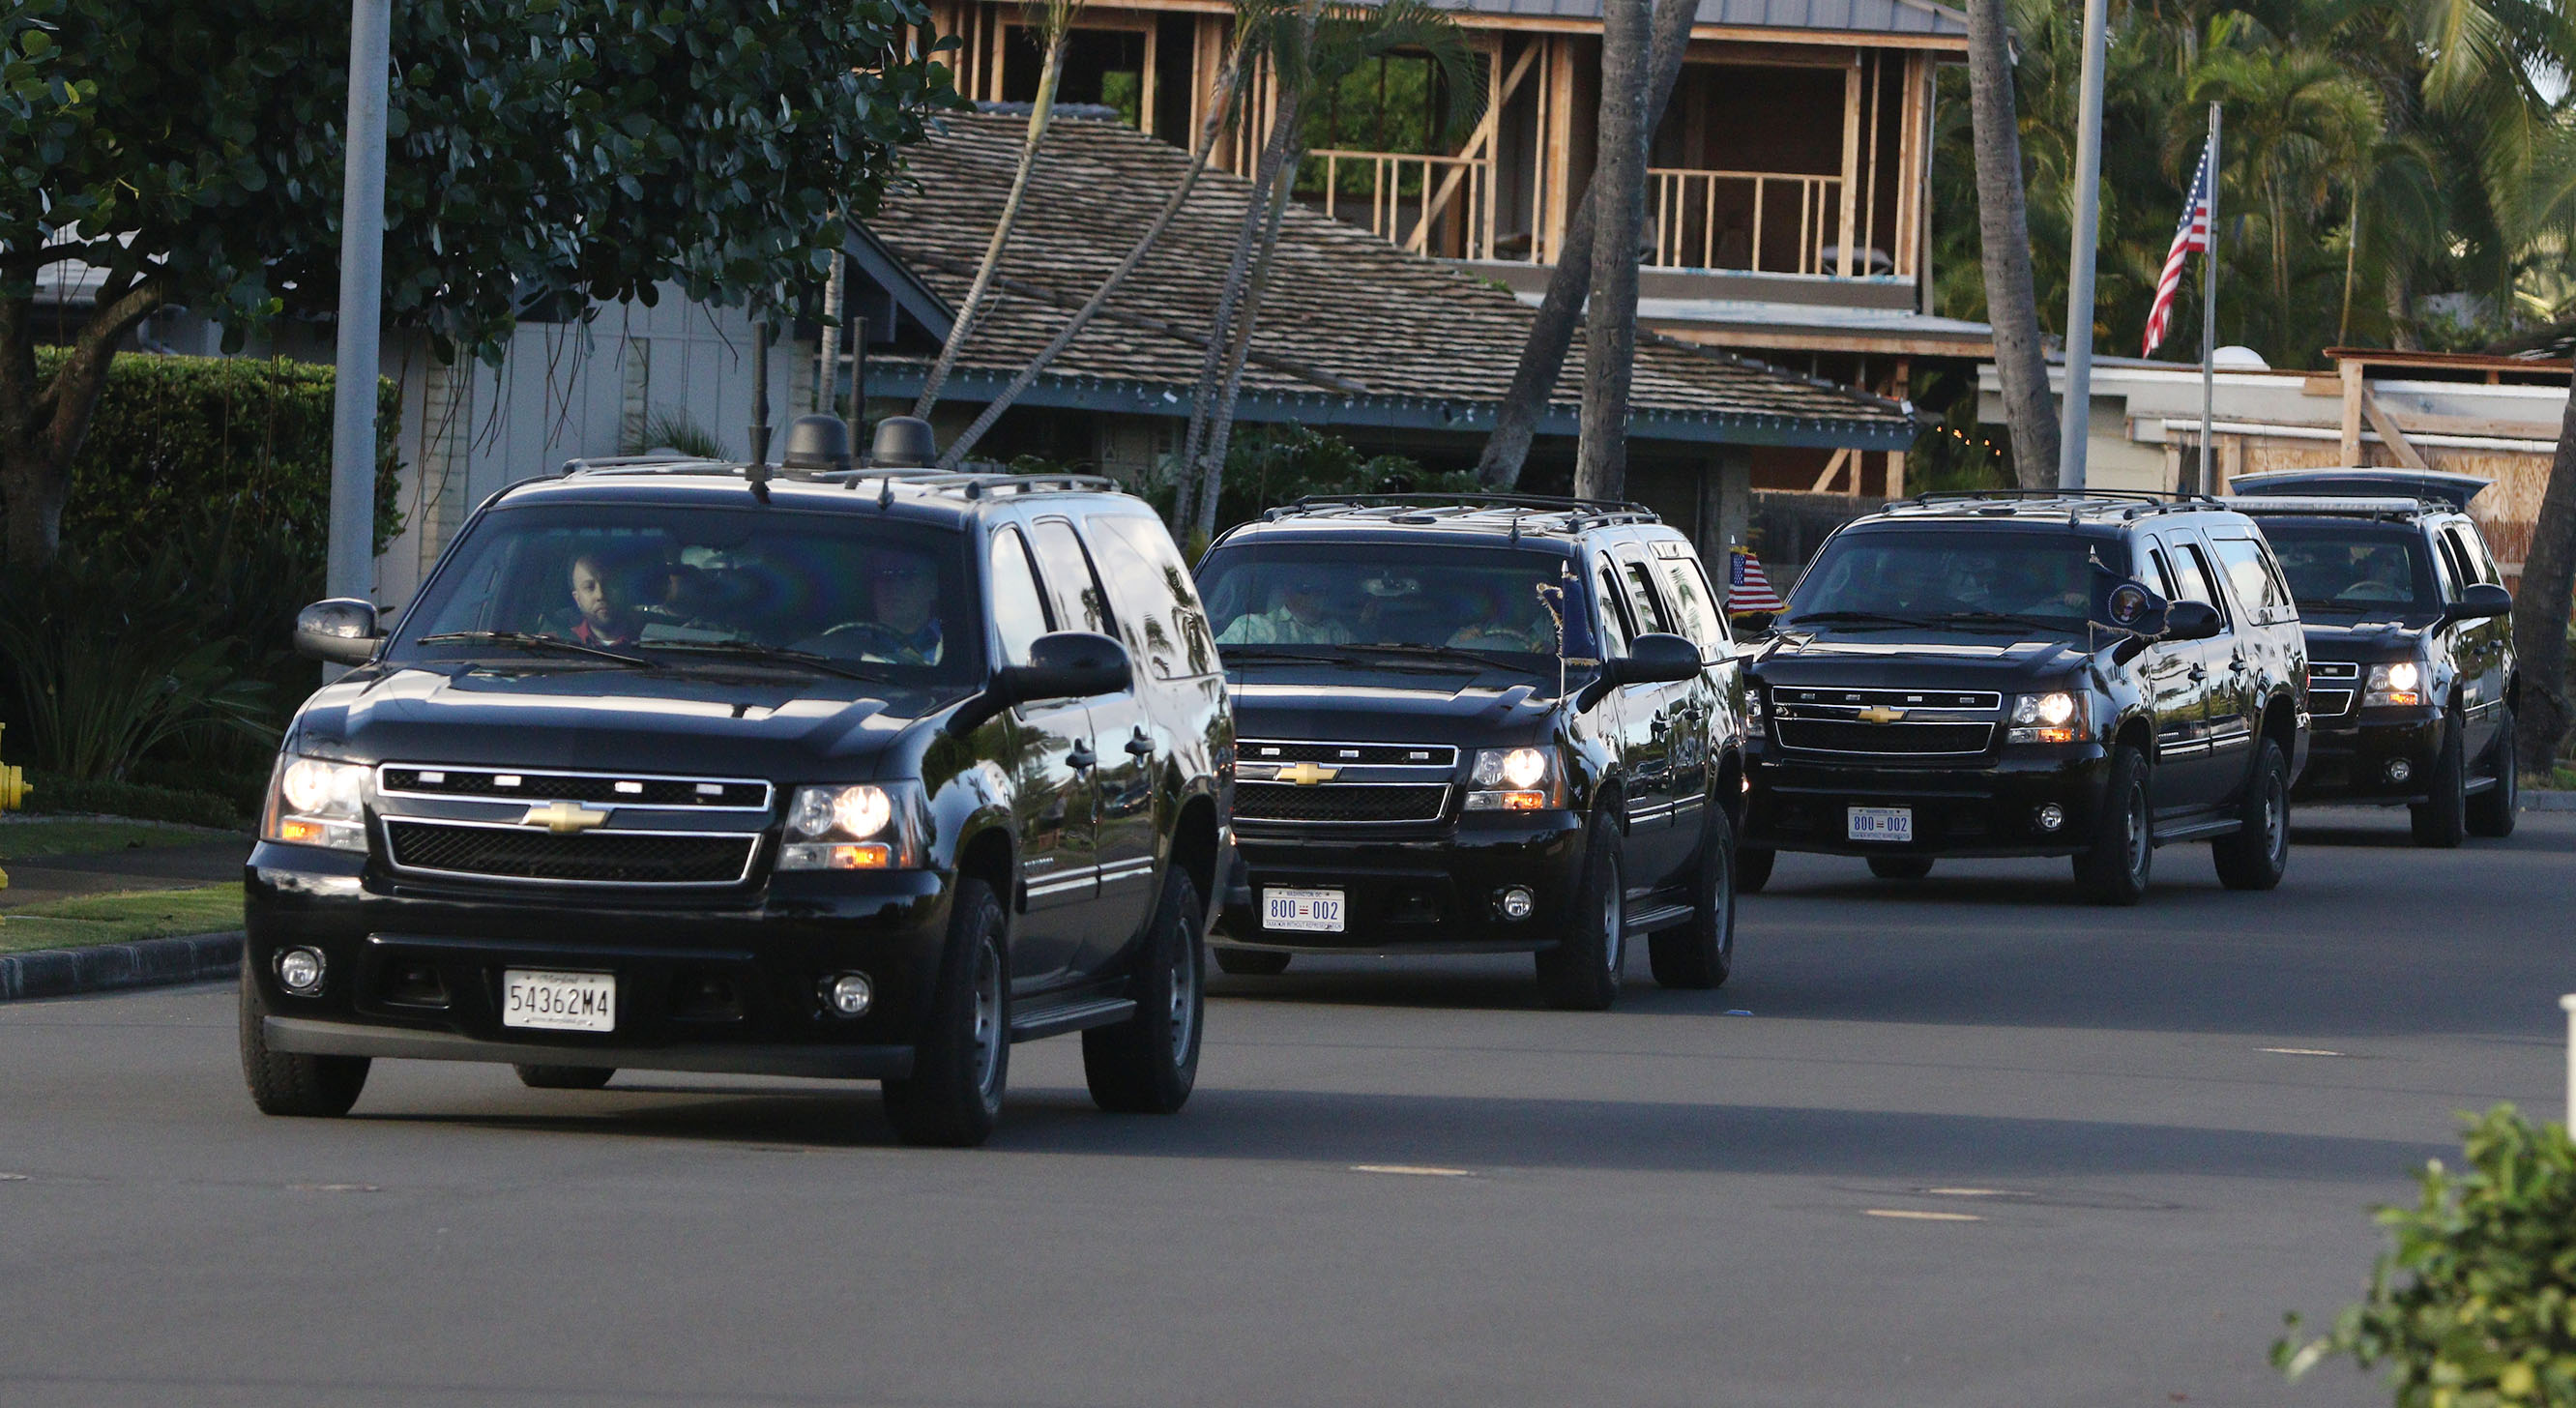 President Barack Obama's motorcade rolls out of his Kailua vacation neighborhood on its way to the Marine Corps Base in Kaneohe. Unlike during vacation stops such as the First Family made earlier in the day at the Bellows Air Force Station beach, this time his car sported American and presidential flags.